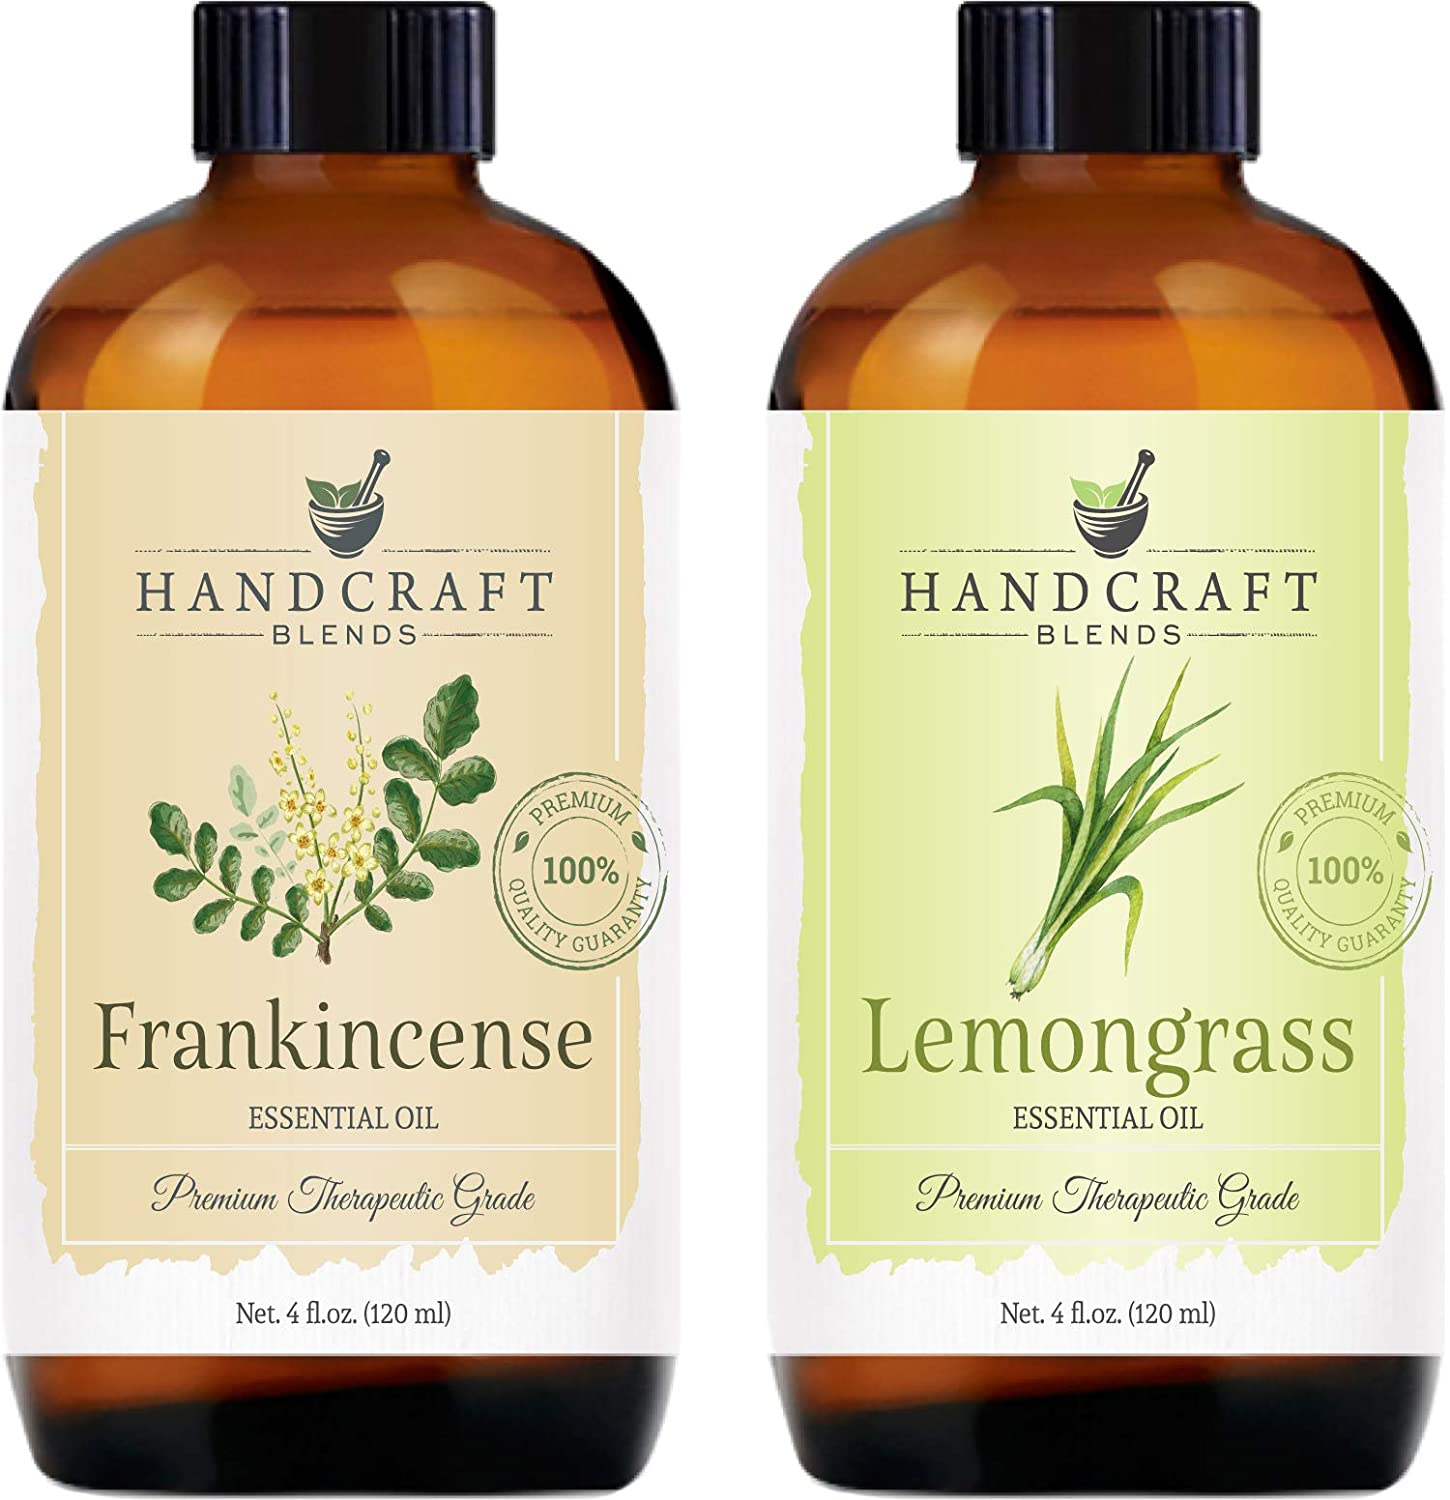 Handcraft Lemongrass Essential Oil Oi and Cheap mail order shopping Frankincense New Orleans Mall